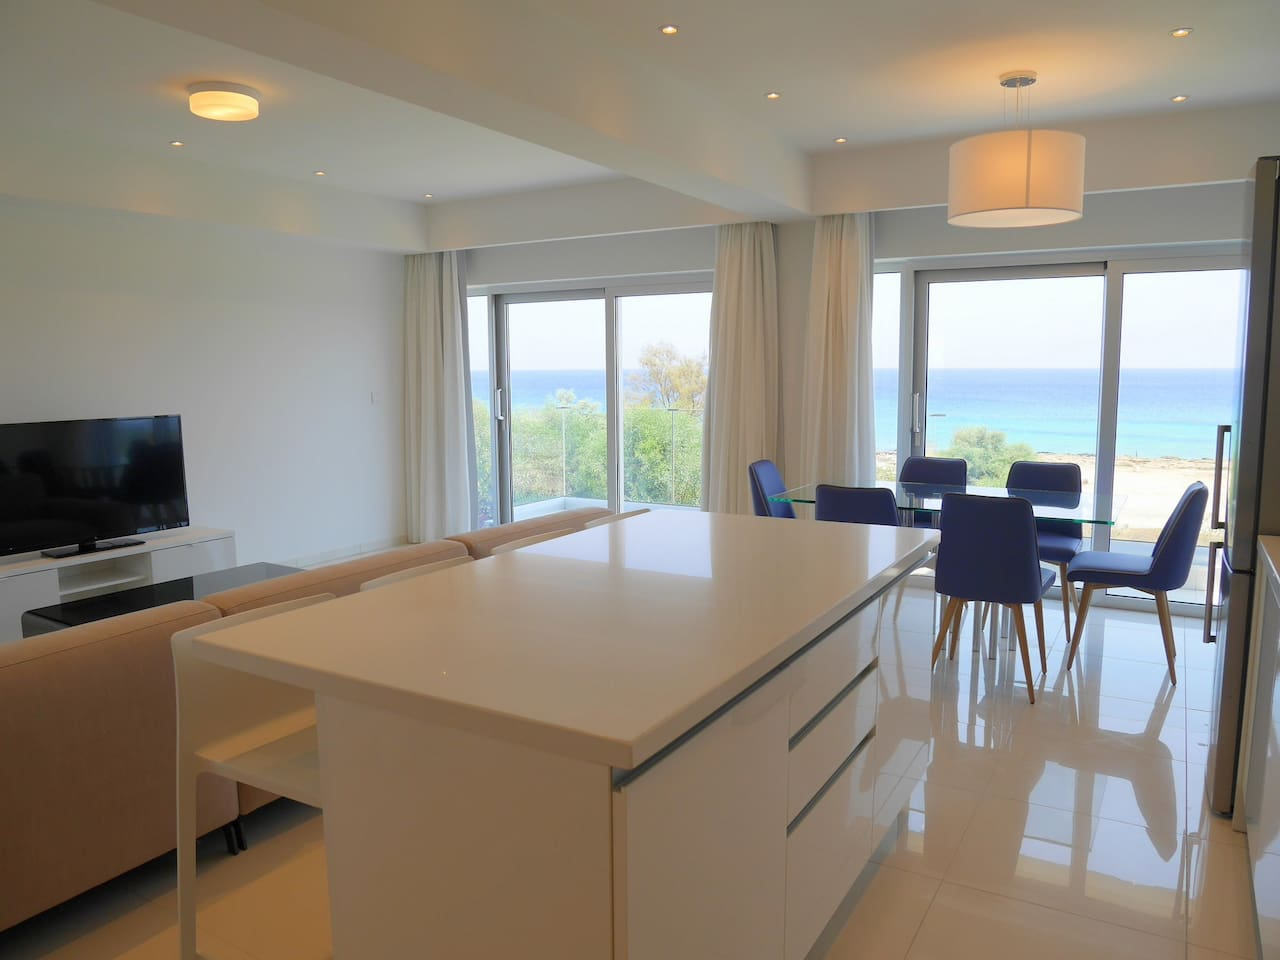 2 Bed Luxury Apt with Large Communal Pool - B2-101 photo 19271279